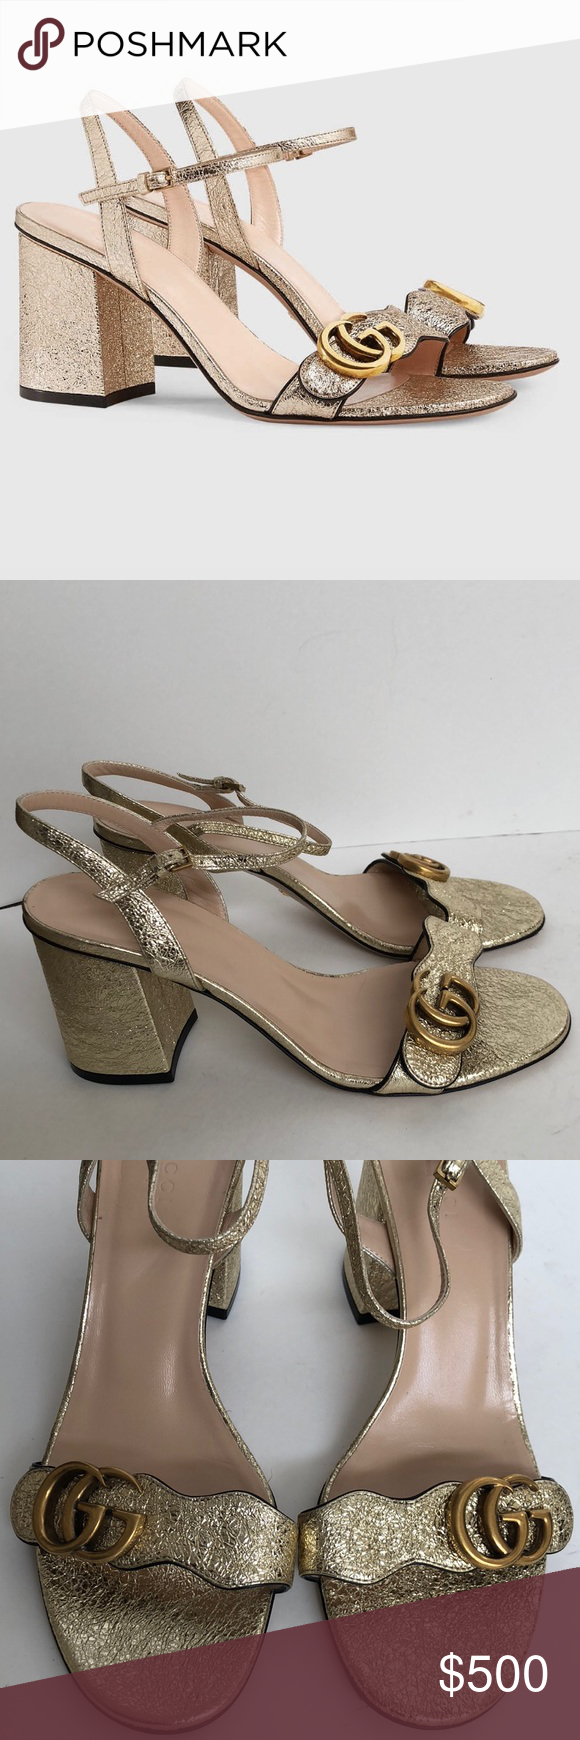 aef026d4470 Gucci Marmont metallic laminate heels sandals 38.5 Pre-owned authentic Gucci  Marmont Metallic Laminate Leather